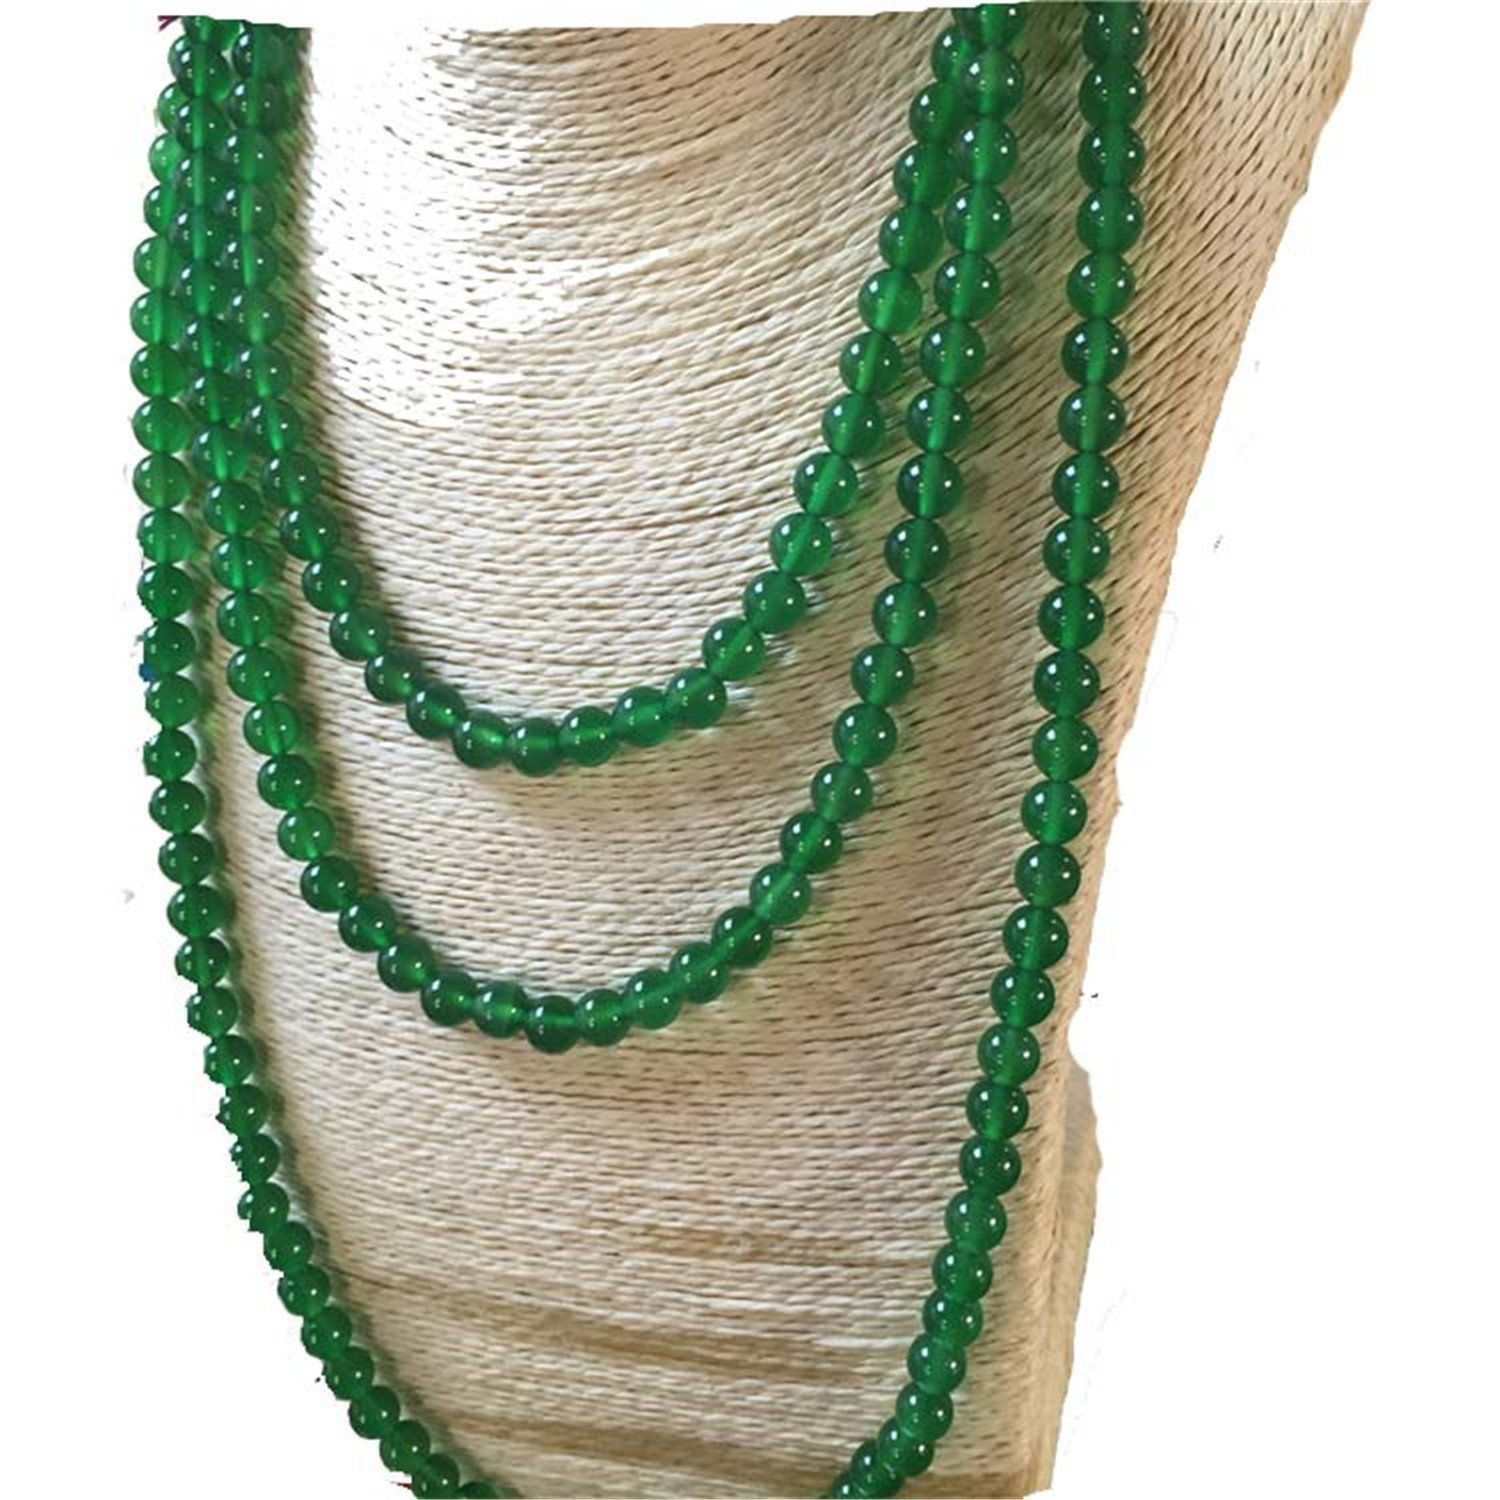 Koraba Fine Jewelry Natural Green Chalcedony Necklace Sweater Chain Pendant Free Shipping 500g natural organic moringa leaf pow der green pow der 80 mesh free shipping